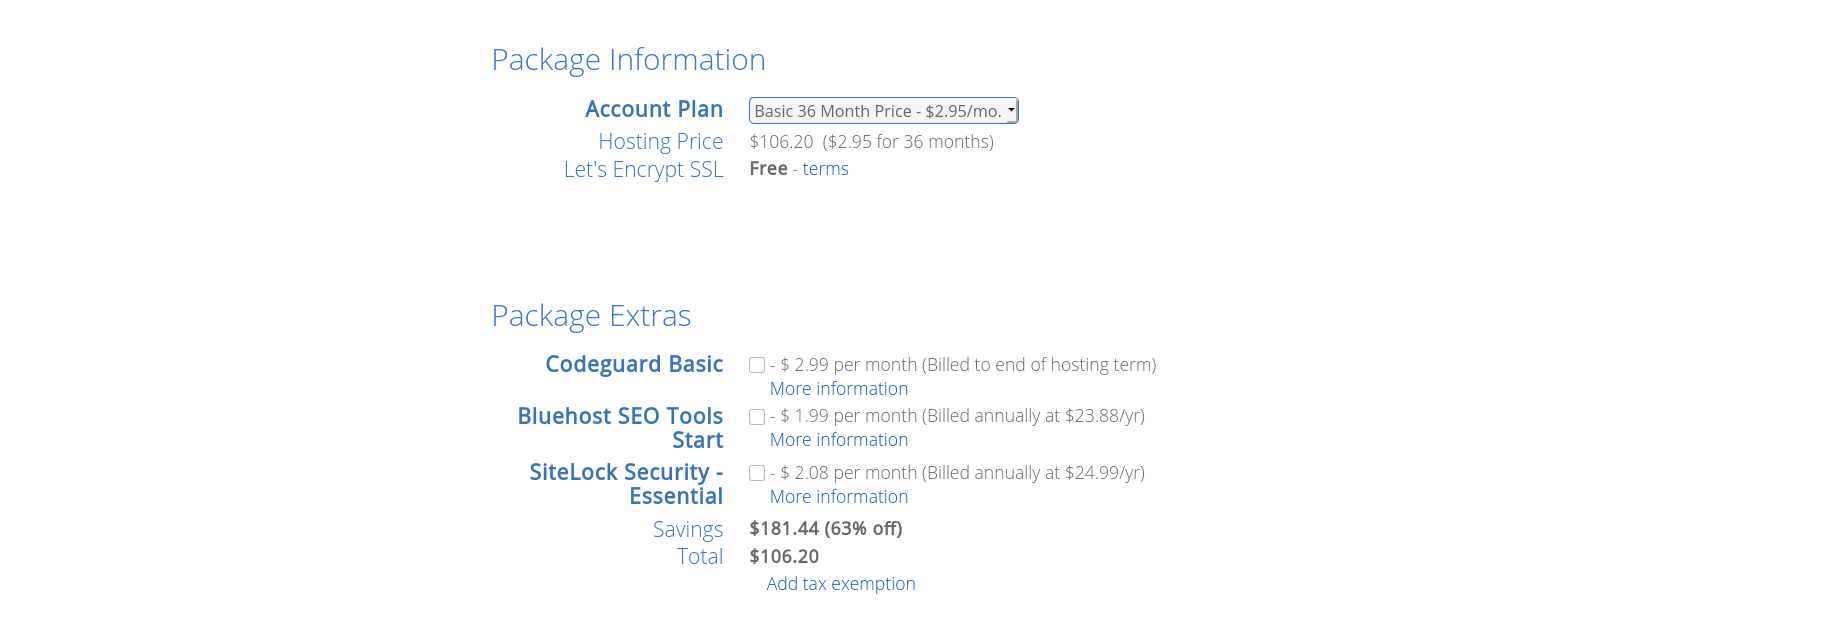 Select your account plan